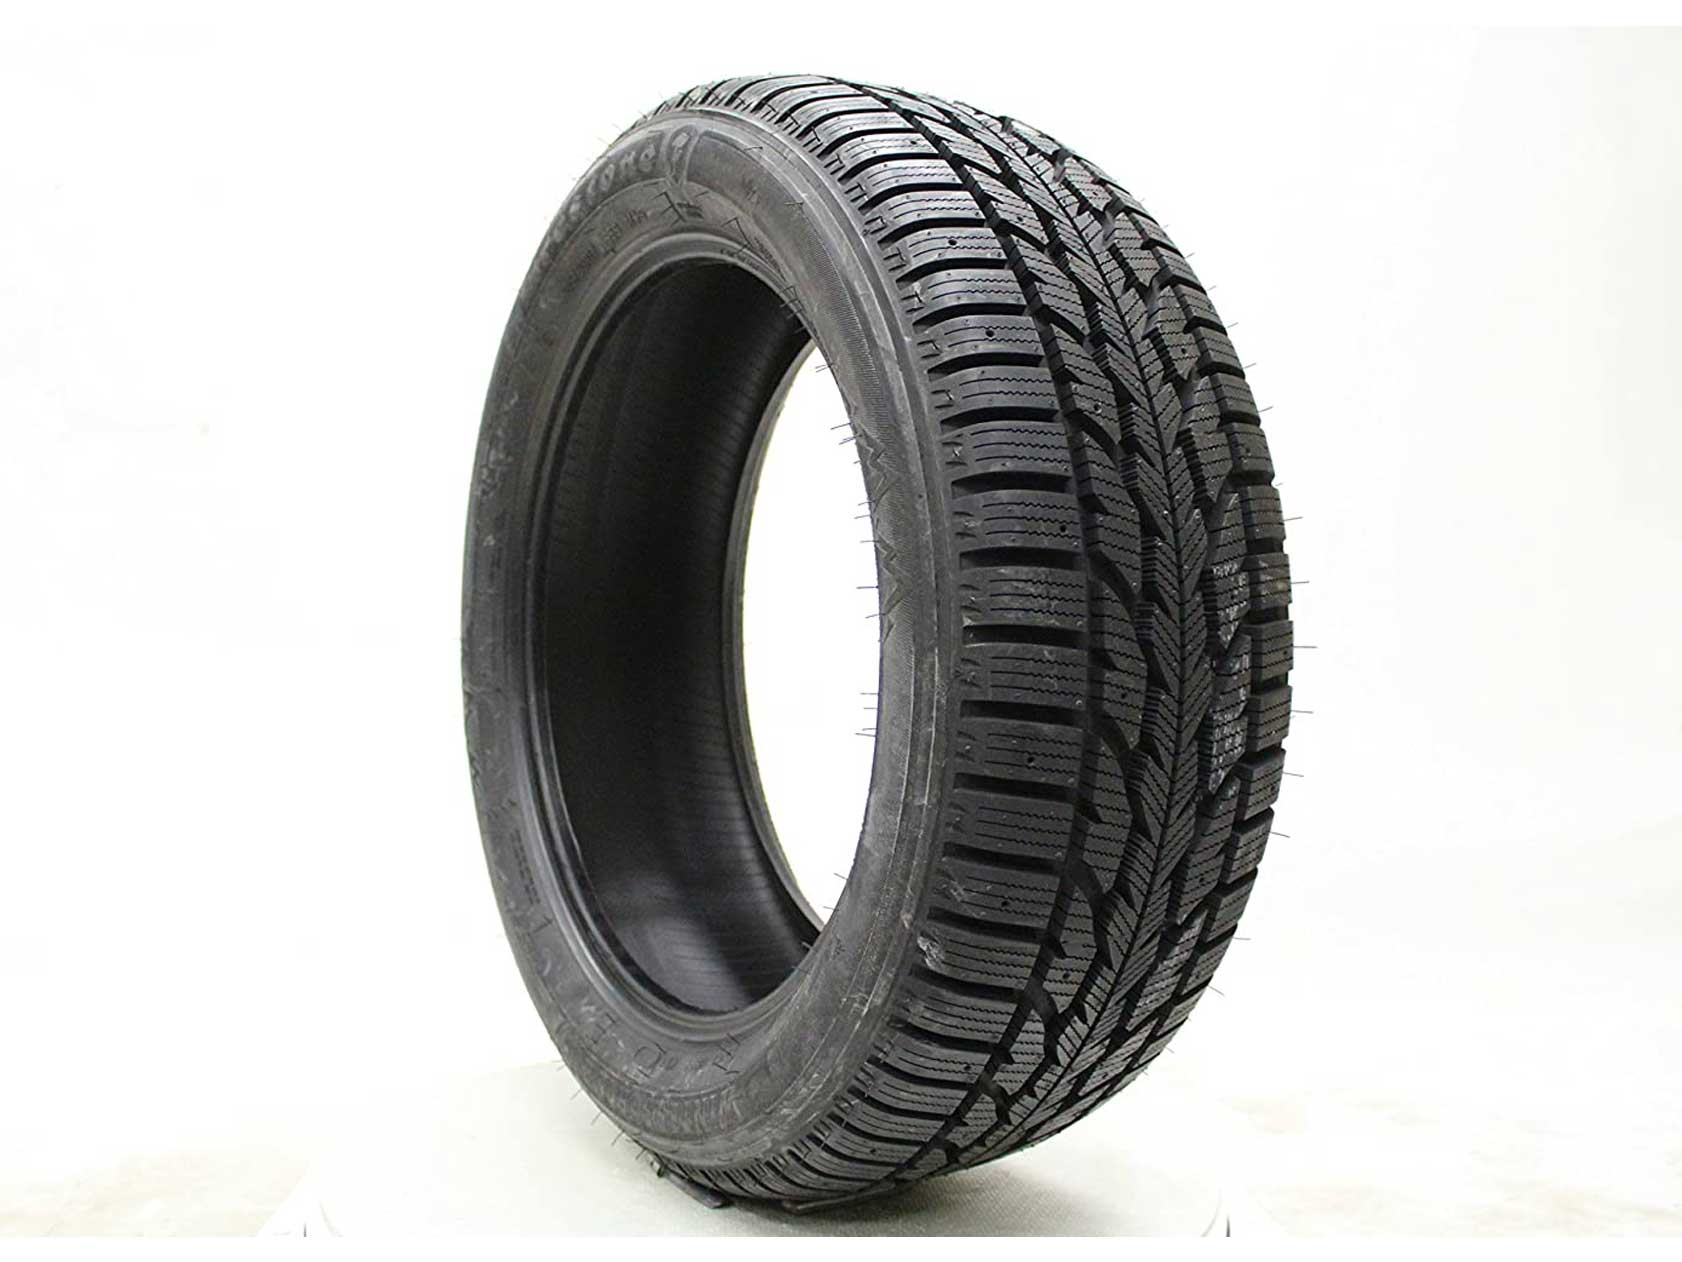 Firestone Winterforce 2 Winter/Snow Passenger Tire are some of the best winter tires.